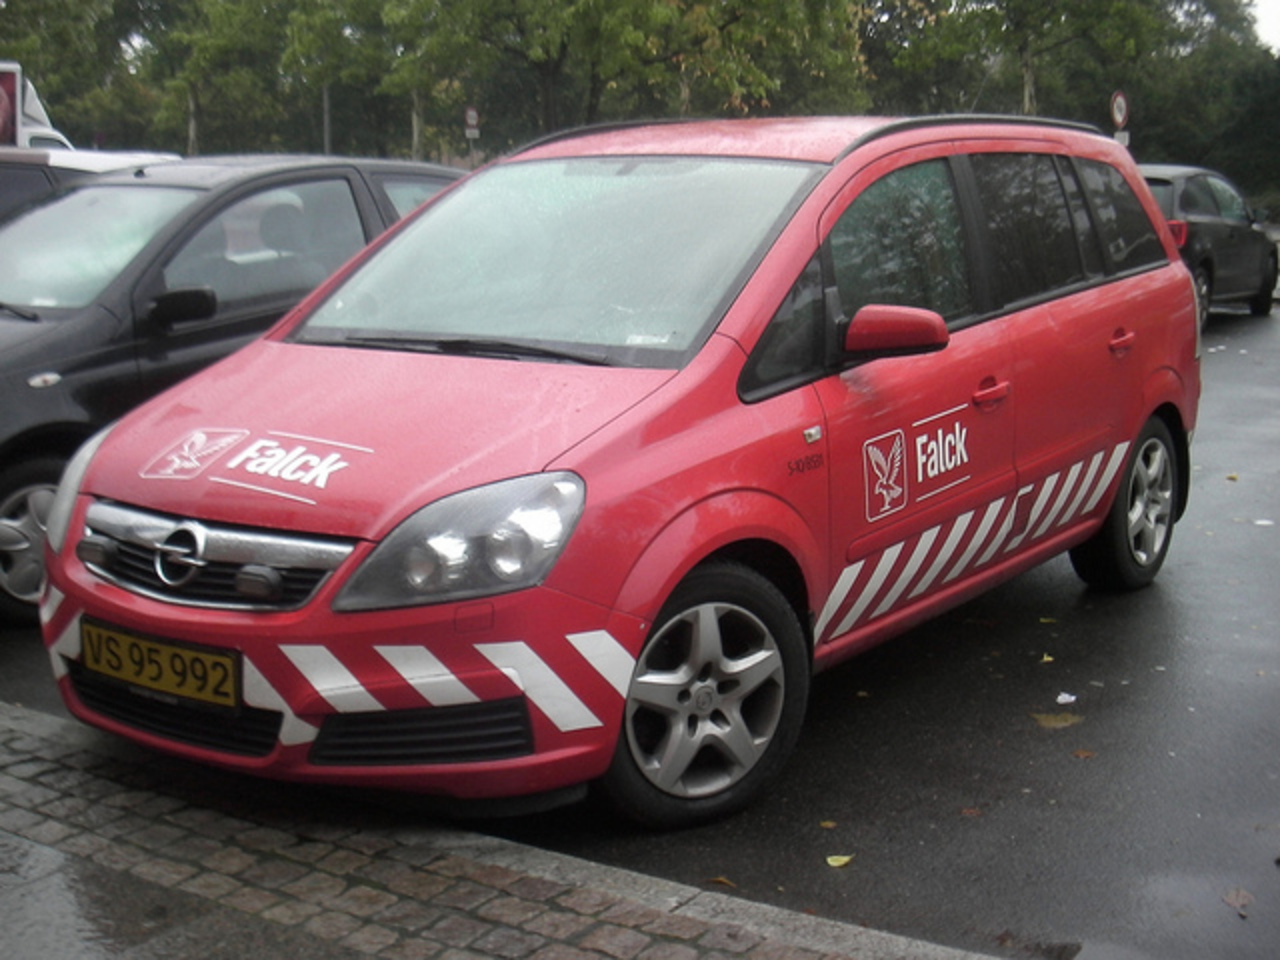 Opel Zafira Flexivan Emergency Manager - Falck - Parked In the ...